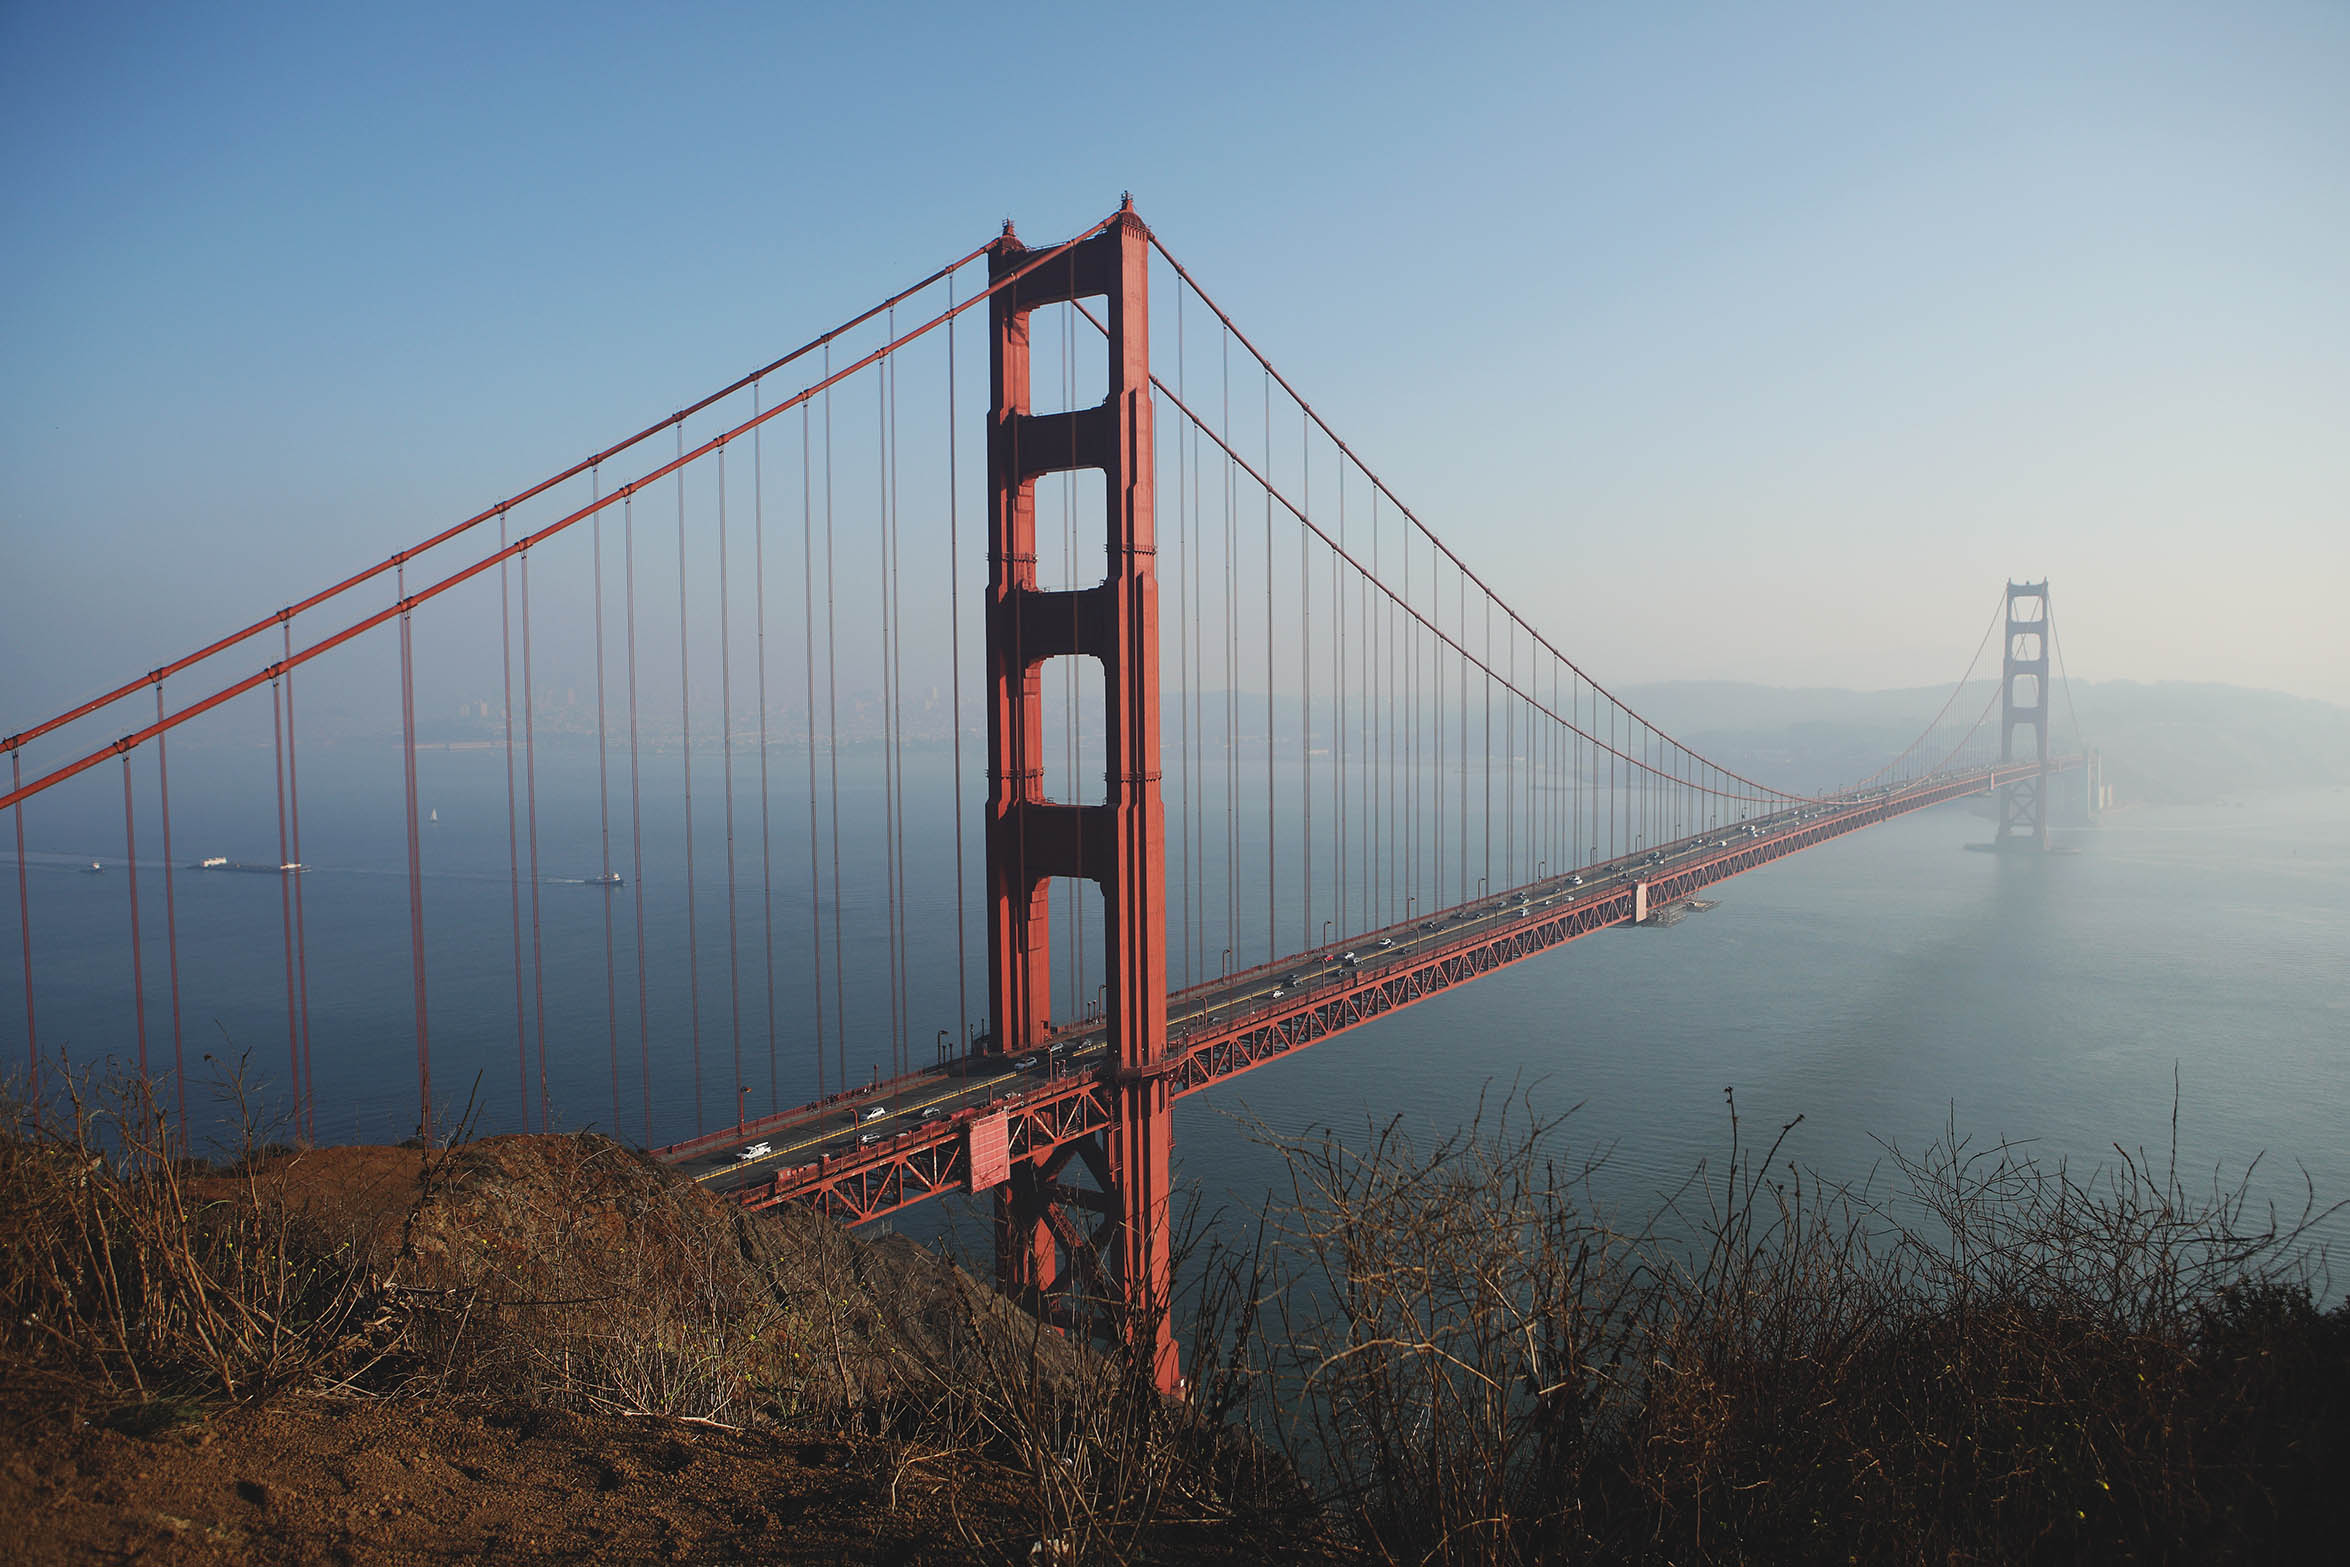 GoldenGateBridge2018a.jpg